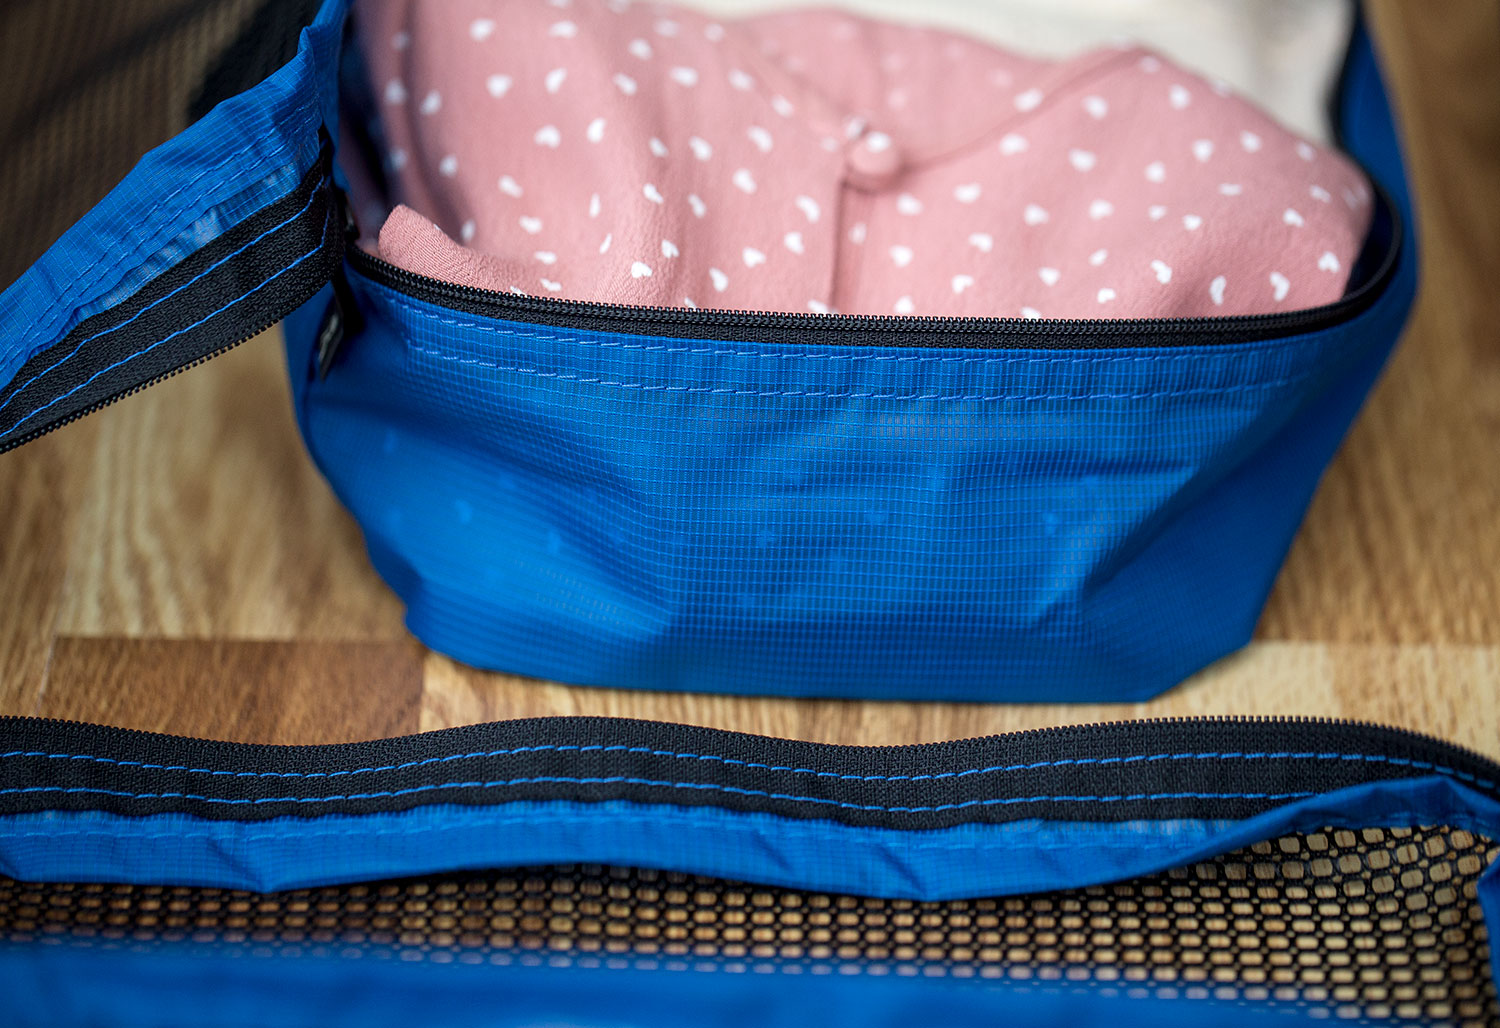 Structured Packing Cubes Can Make Packing Easier